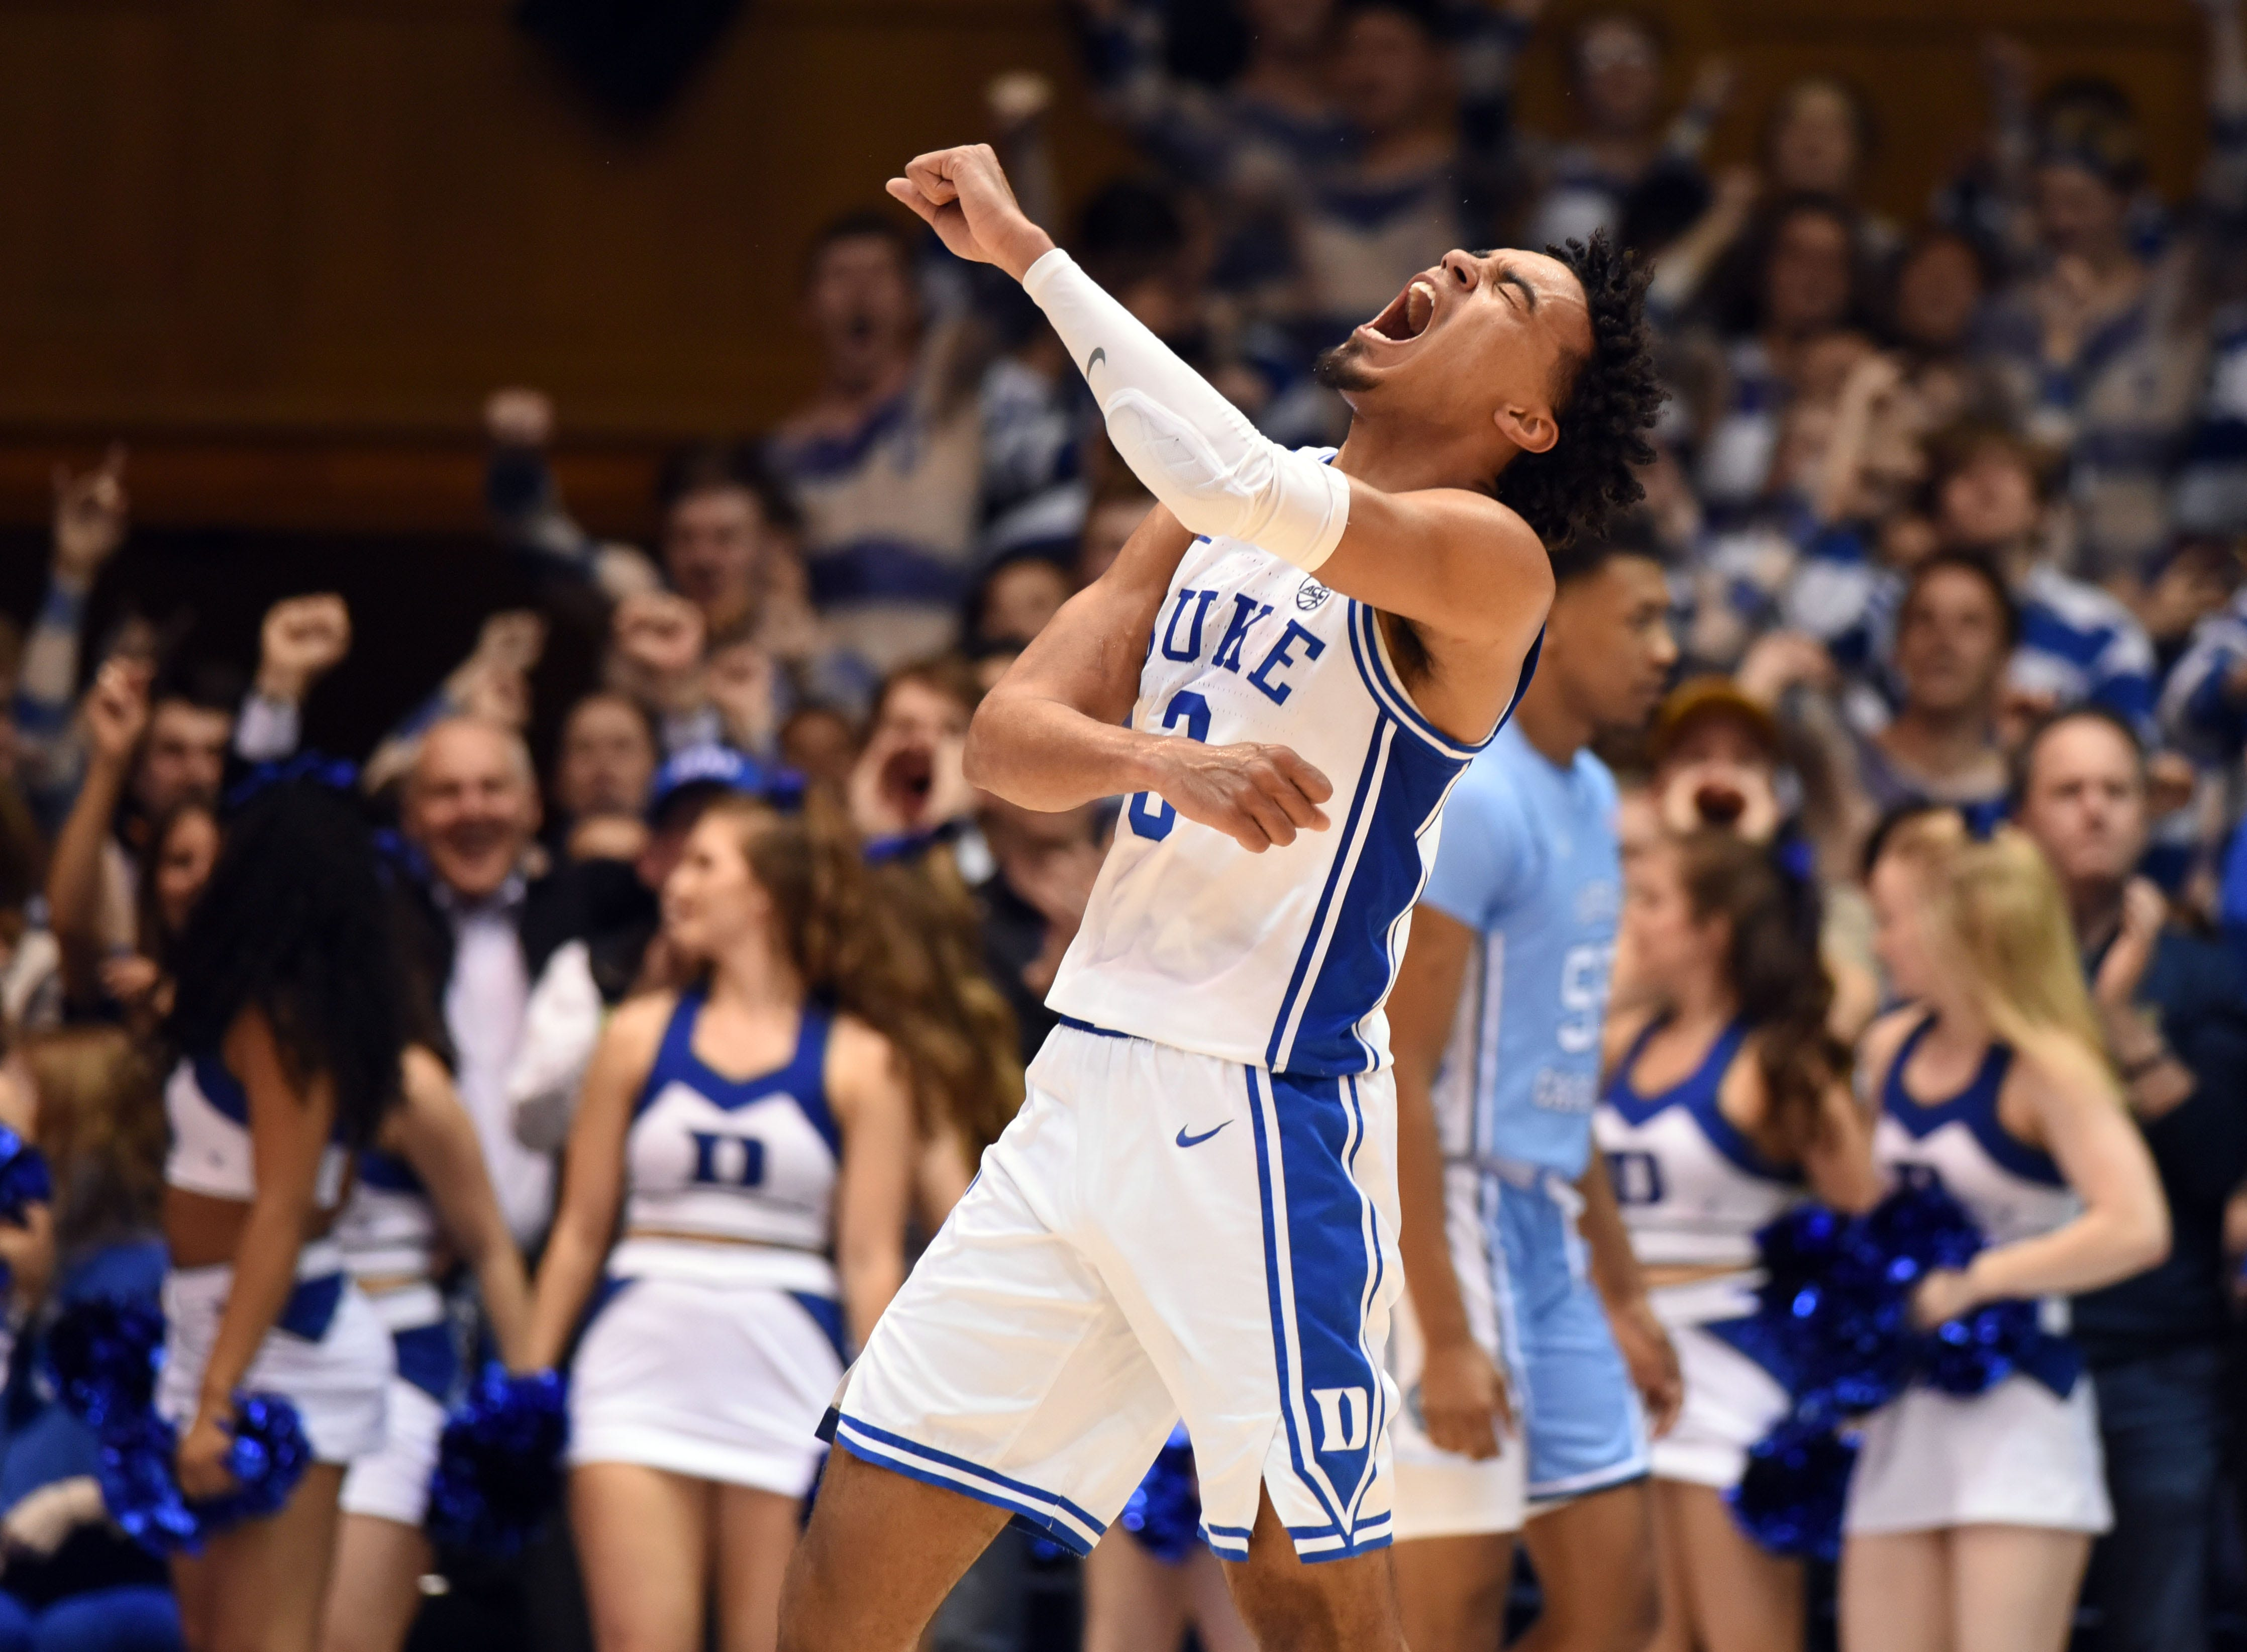 Tre Jones reflects on whirlwind -- from abrupt end at Duke to NBA draft uncertainty